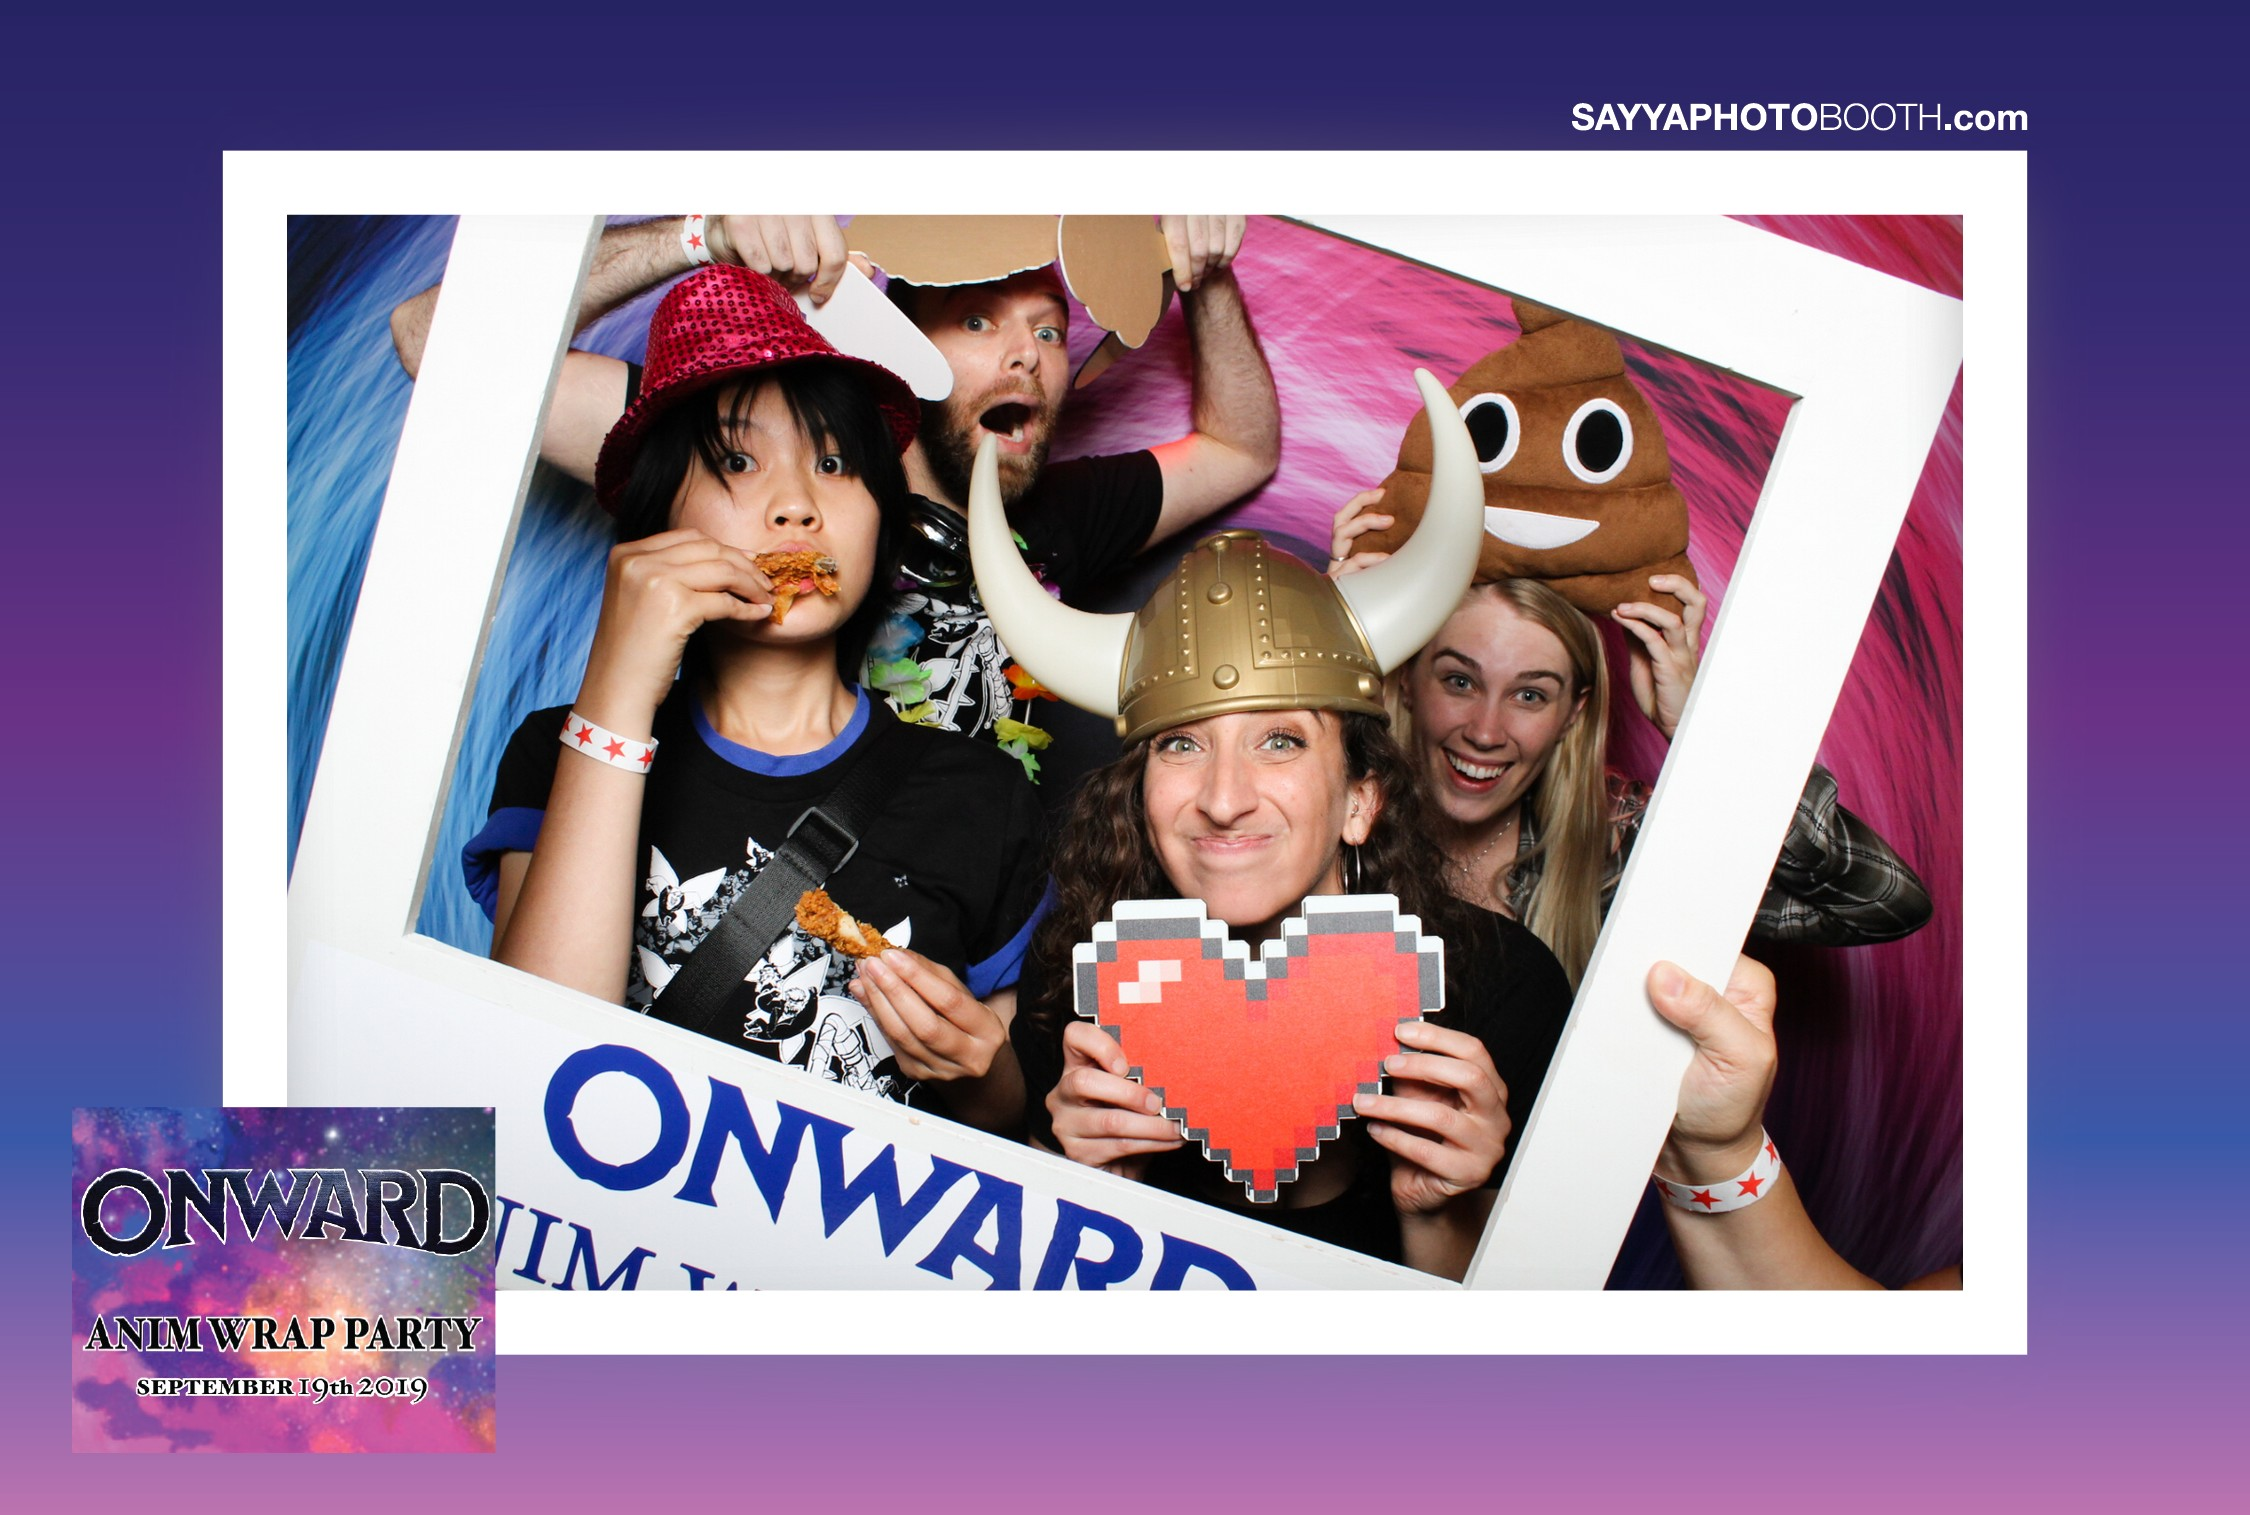 Onward Anim Crew Party